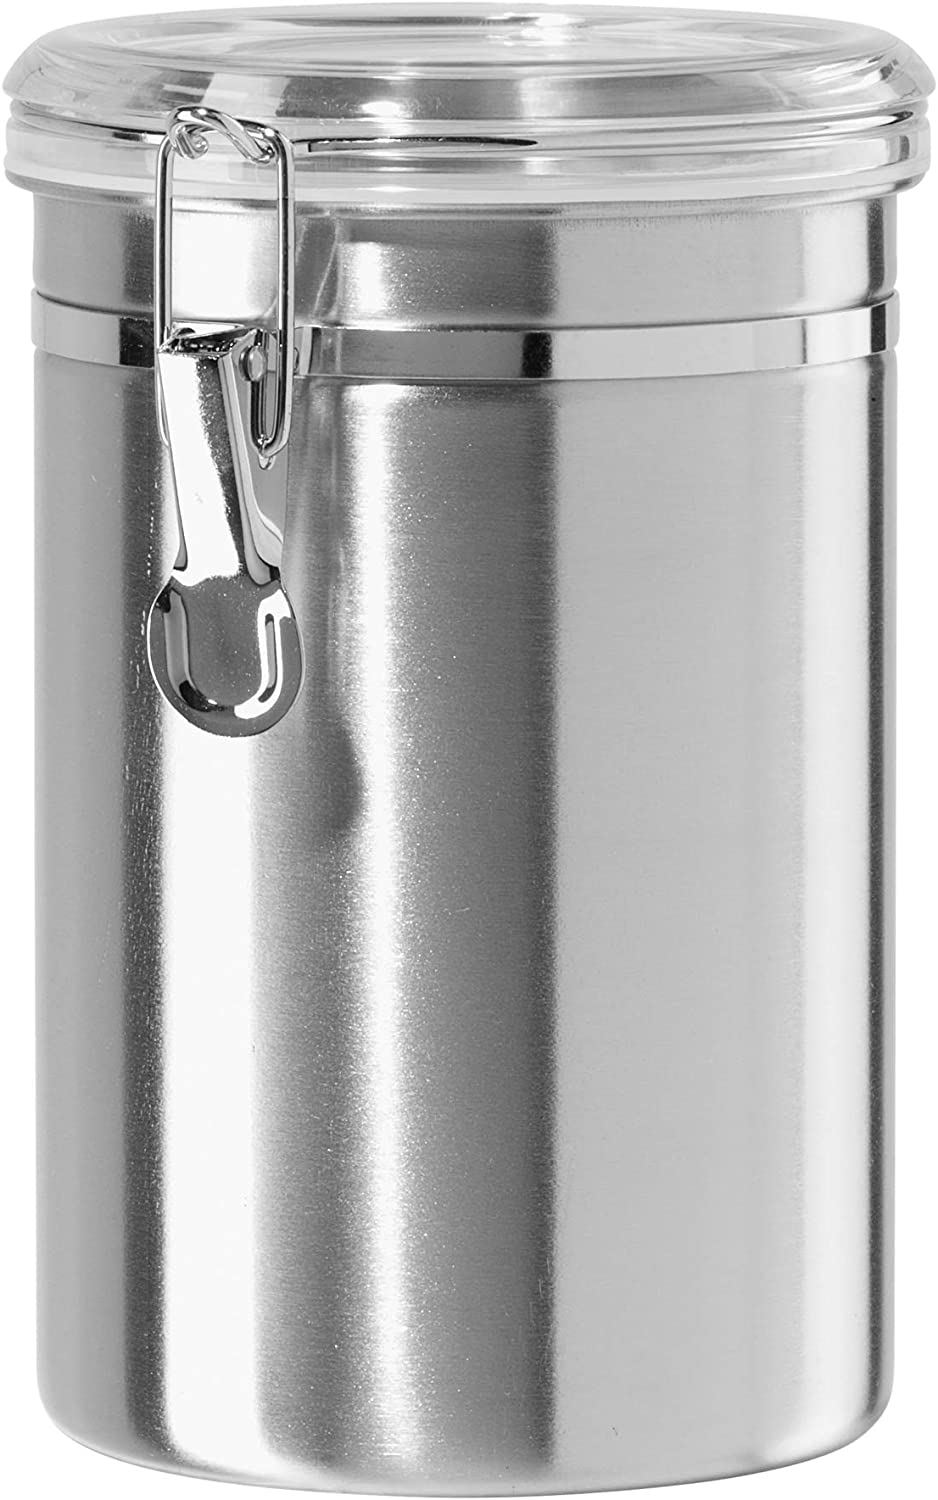 Amazon Com Oggi Clear Canister 62 Ounce Silver Stainless Steel Storage Kitchen Dining